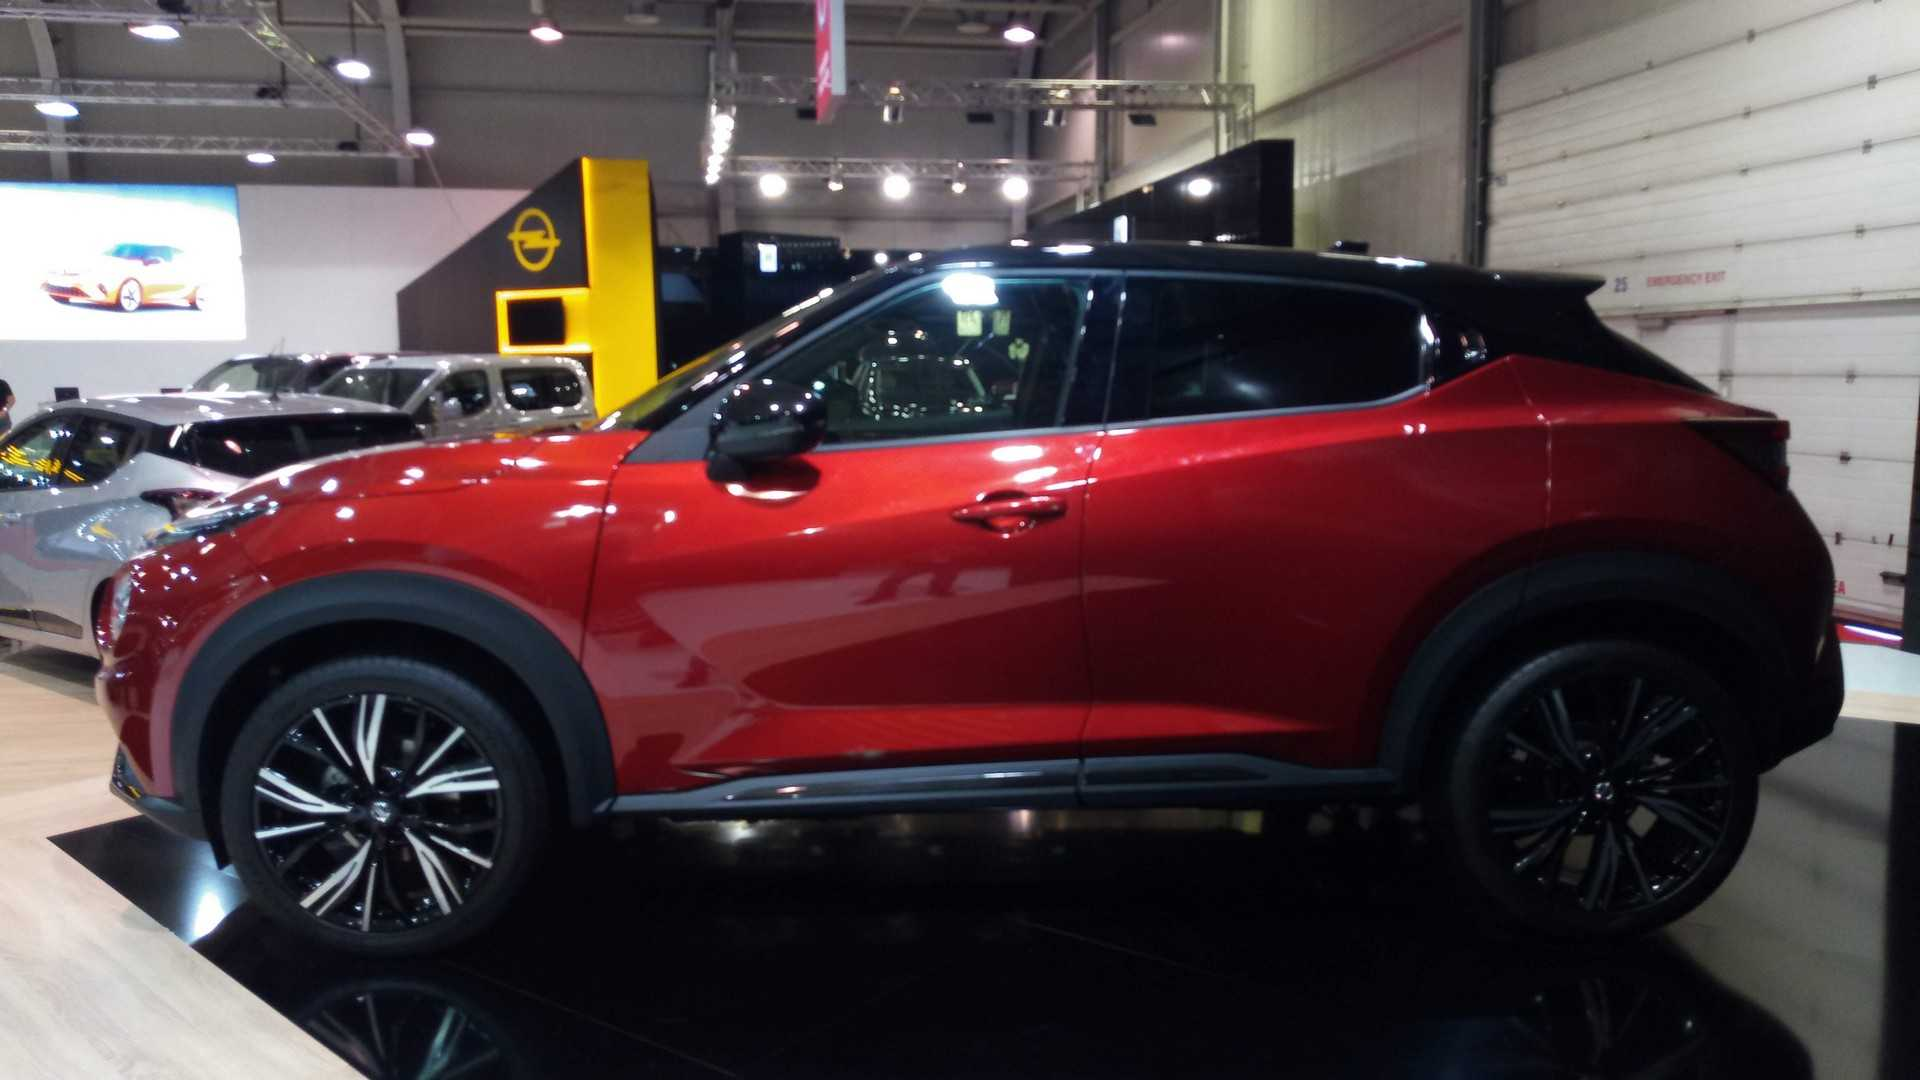 [Resim: 2020-nissan-juke-live-photo.jpg]